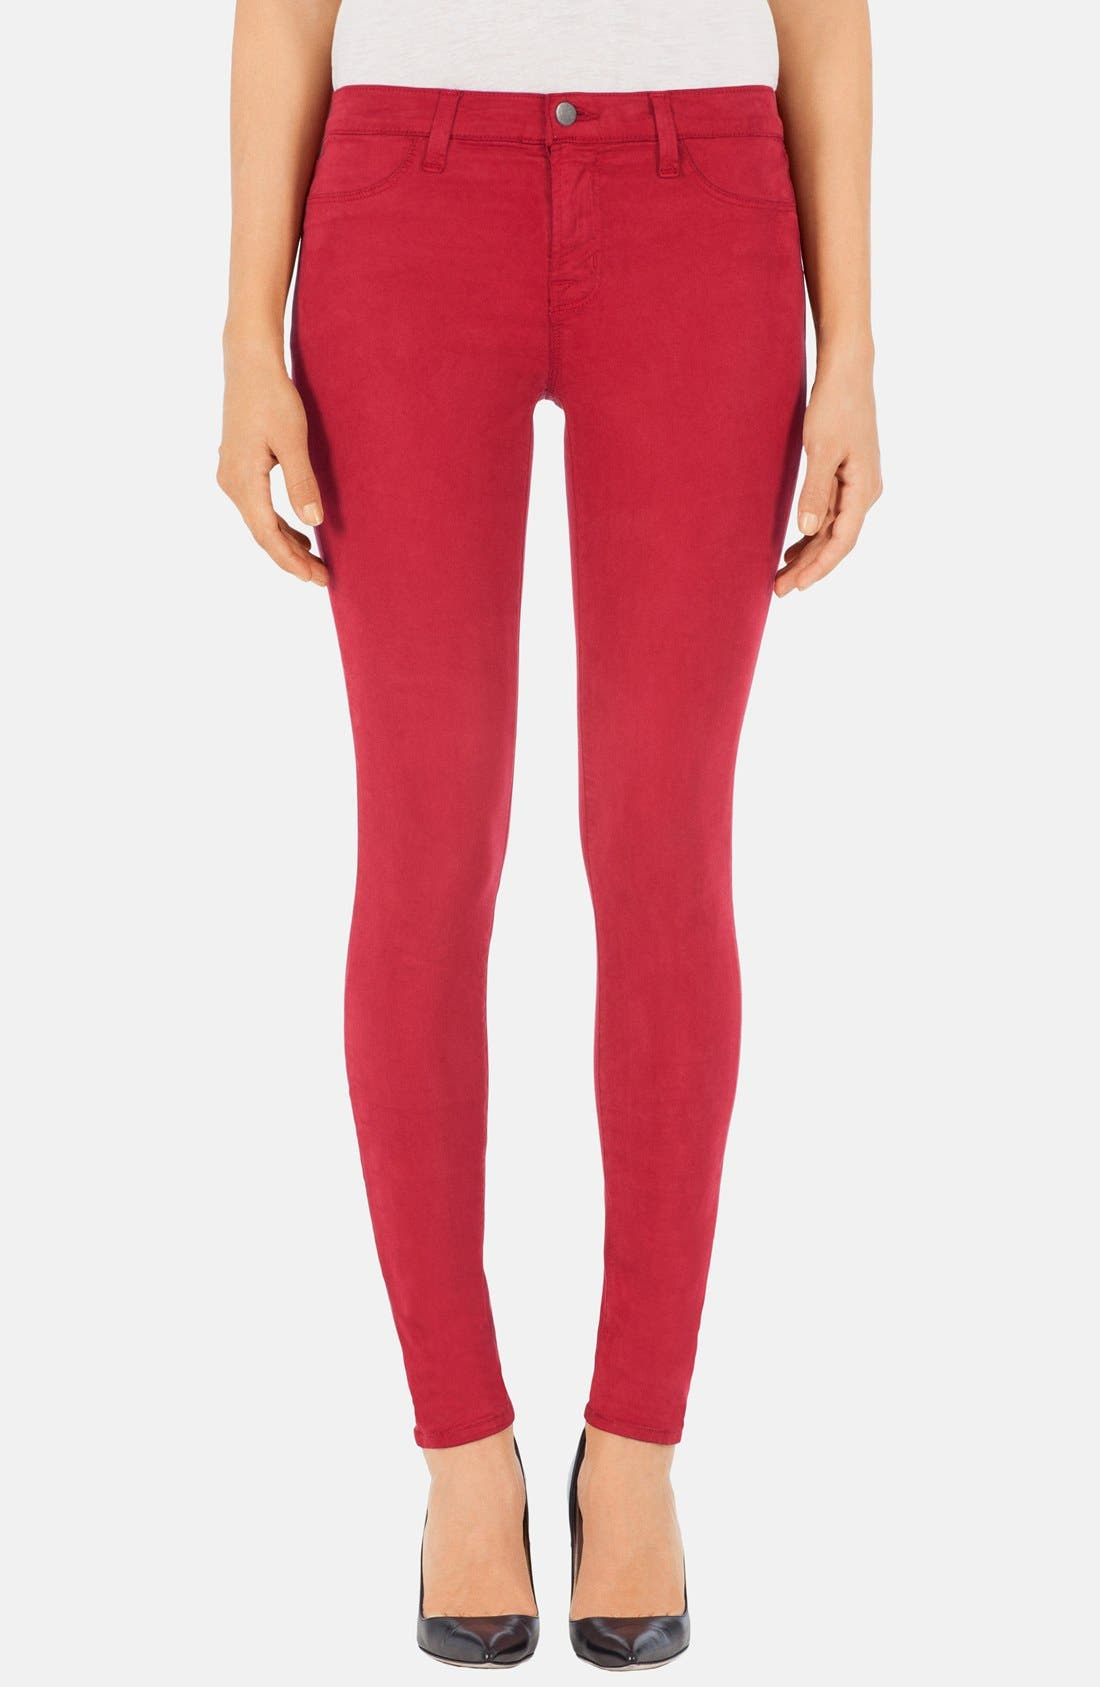 Alternate Image 1 Selected - J Brand '485' Mid Rise Super Skinny Jeans (Carnelian)